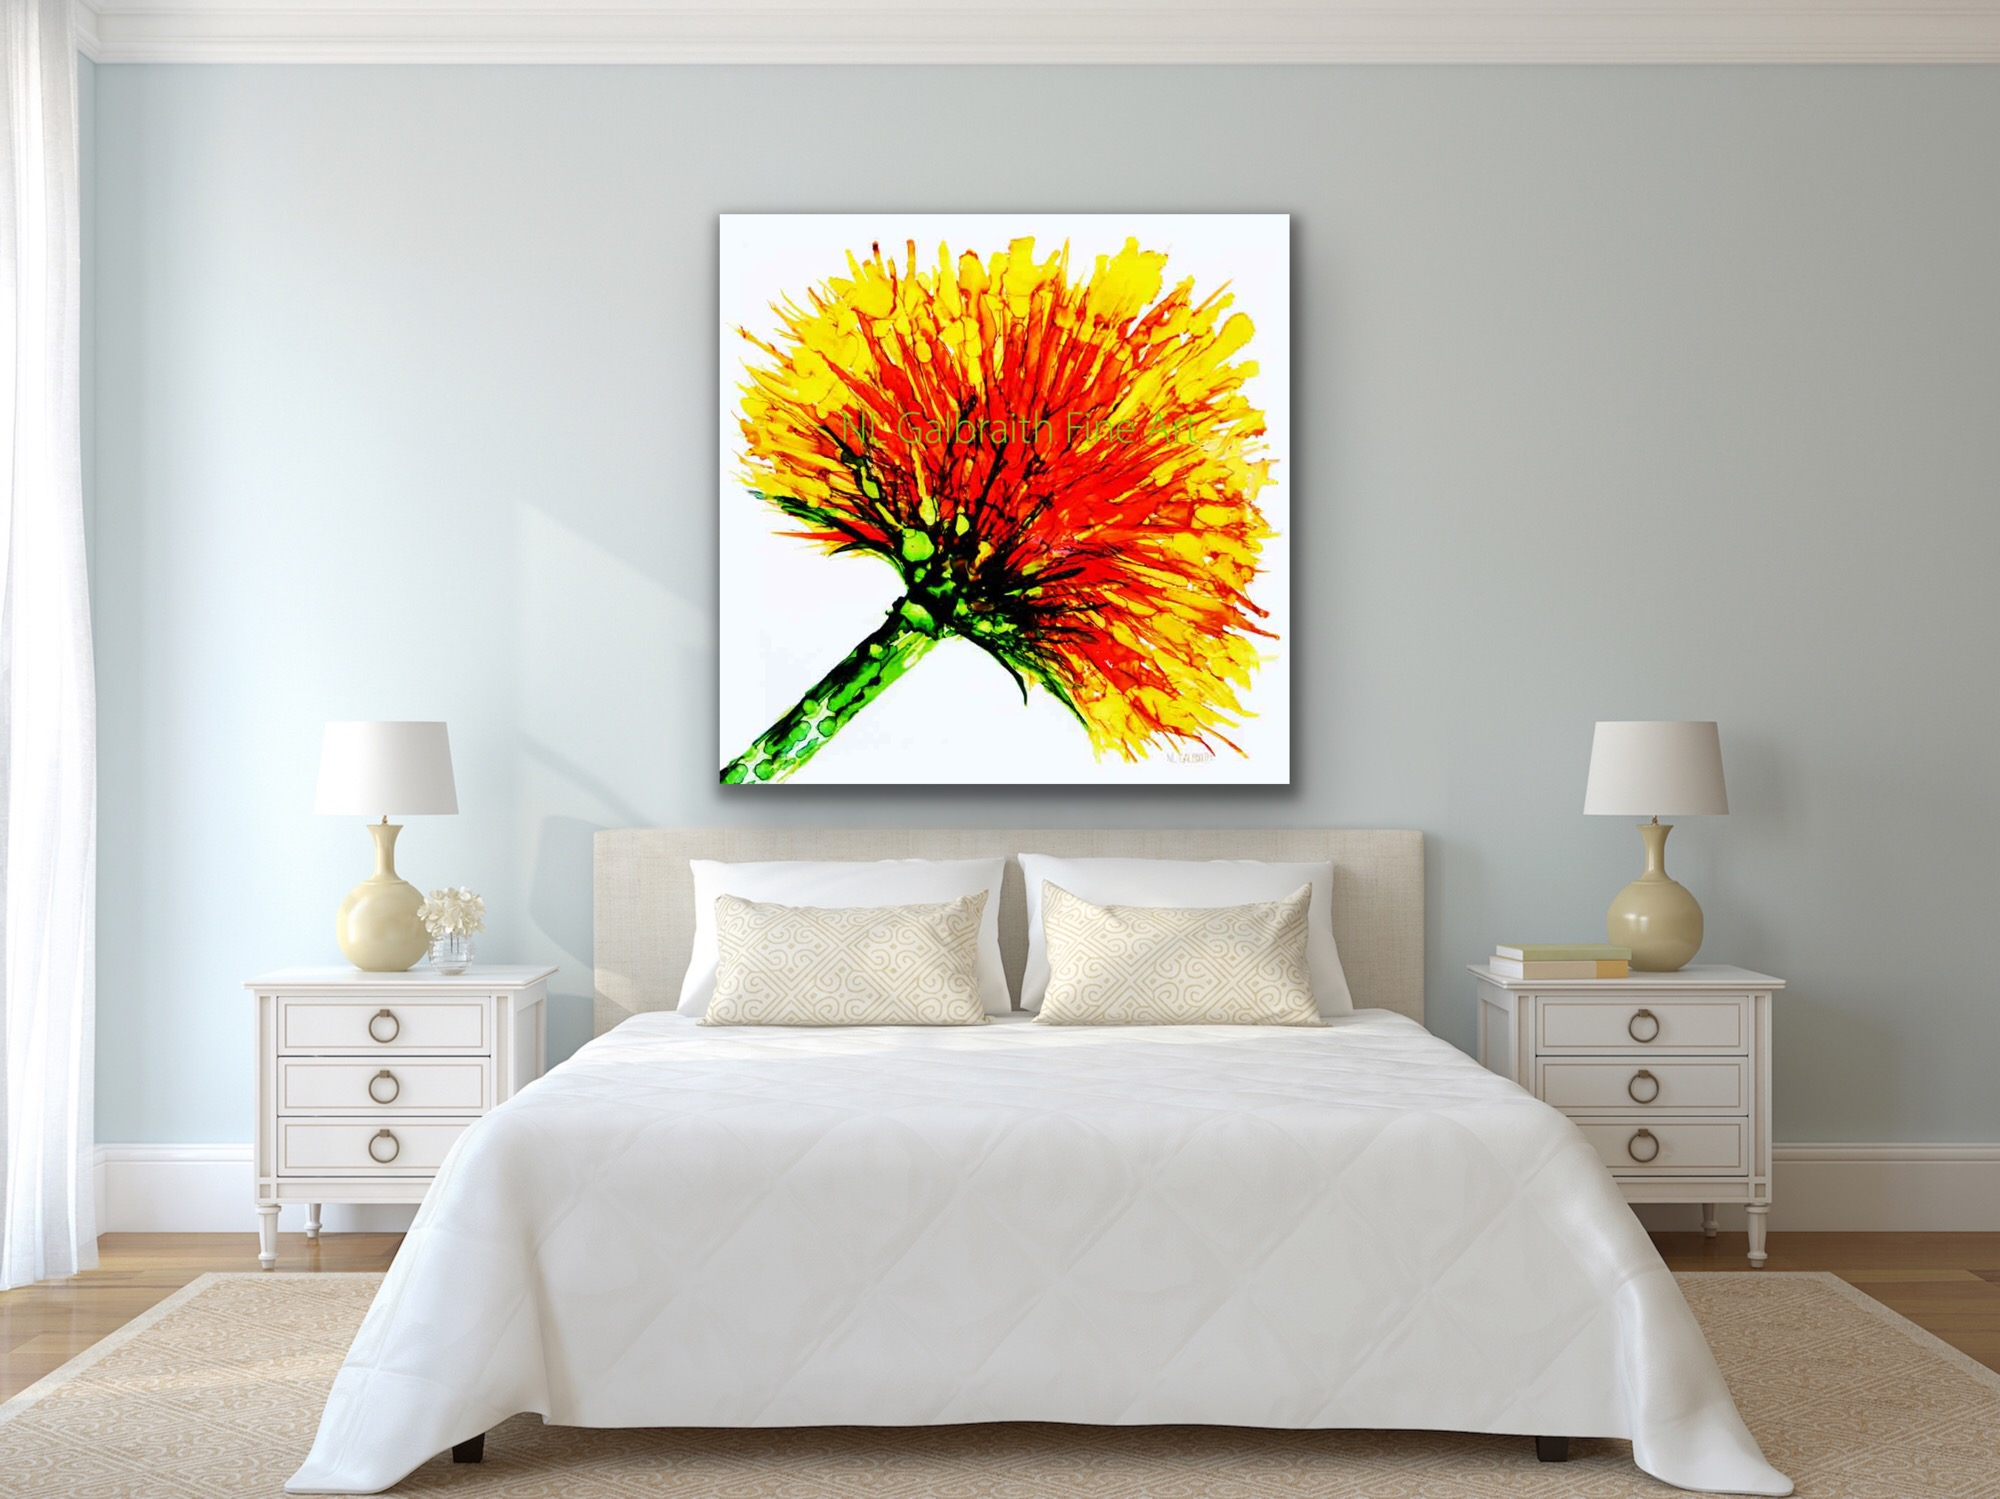 Oversized Graphic of Yellow Orange Flower in a White Bedroom